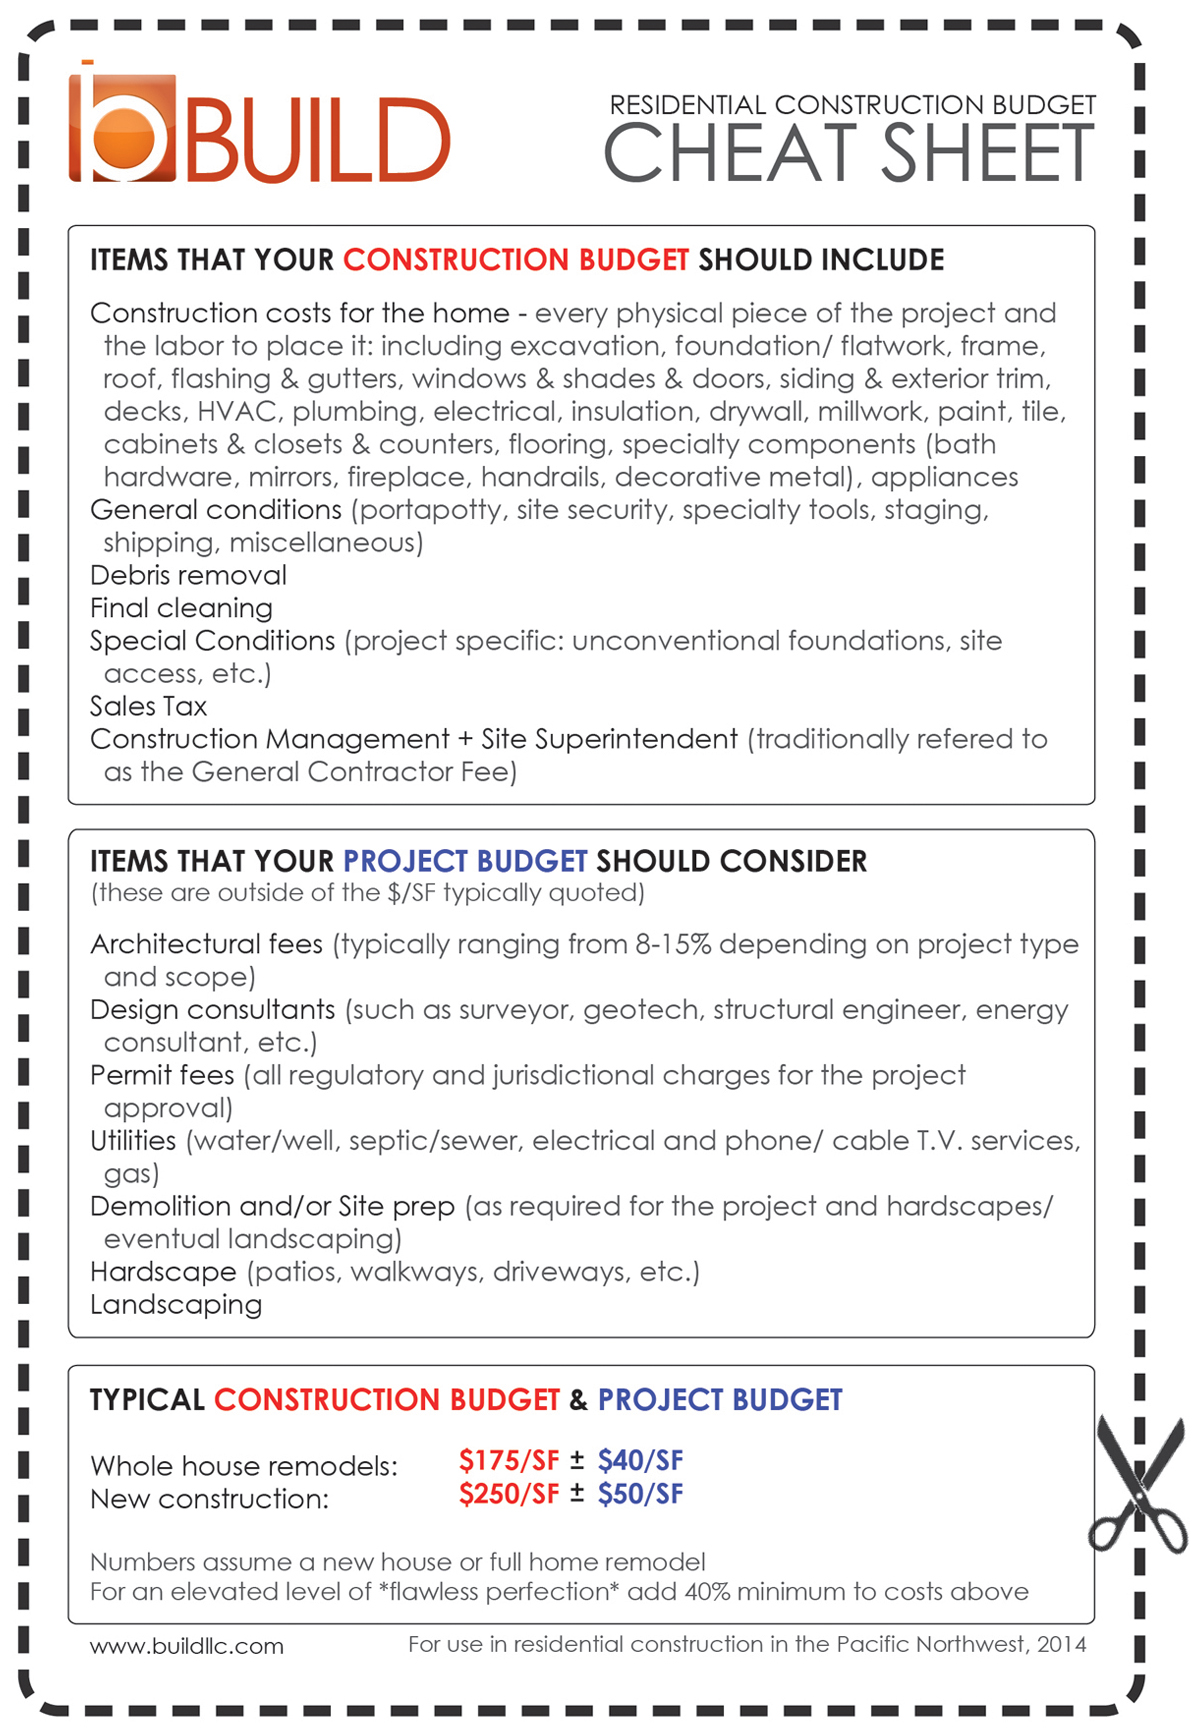 Defining A Construction Budget The Cheat Sheet